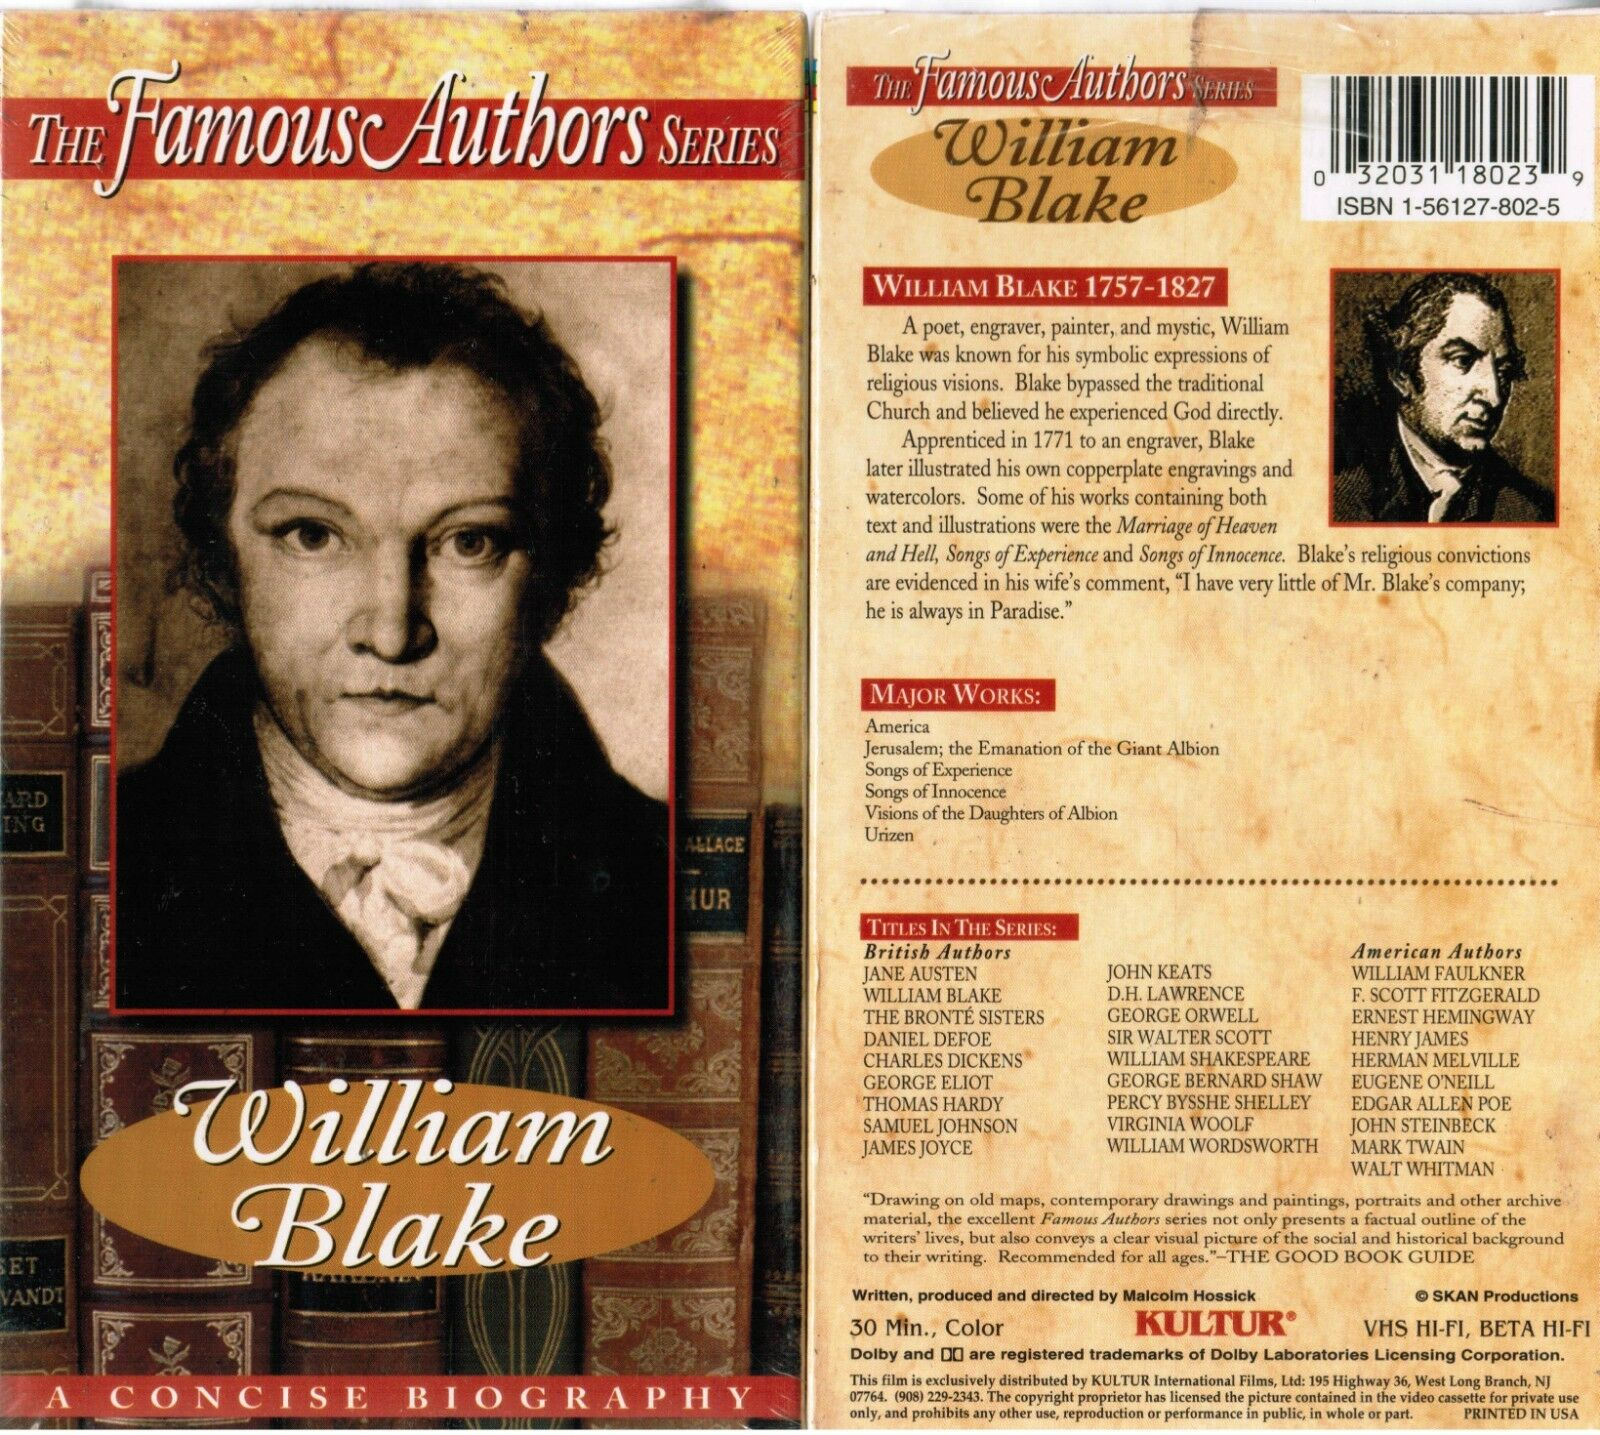 biography of famous authors